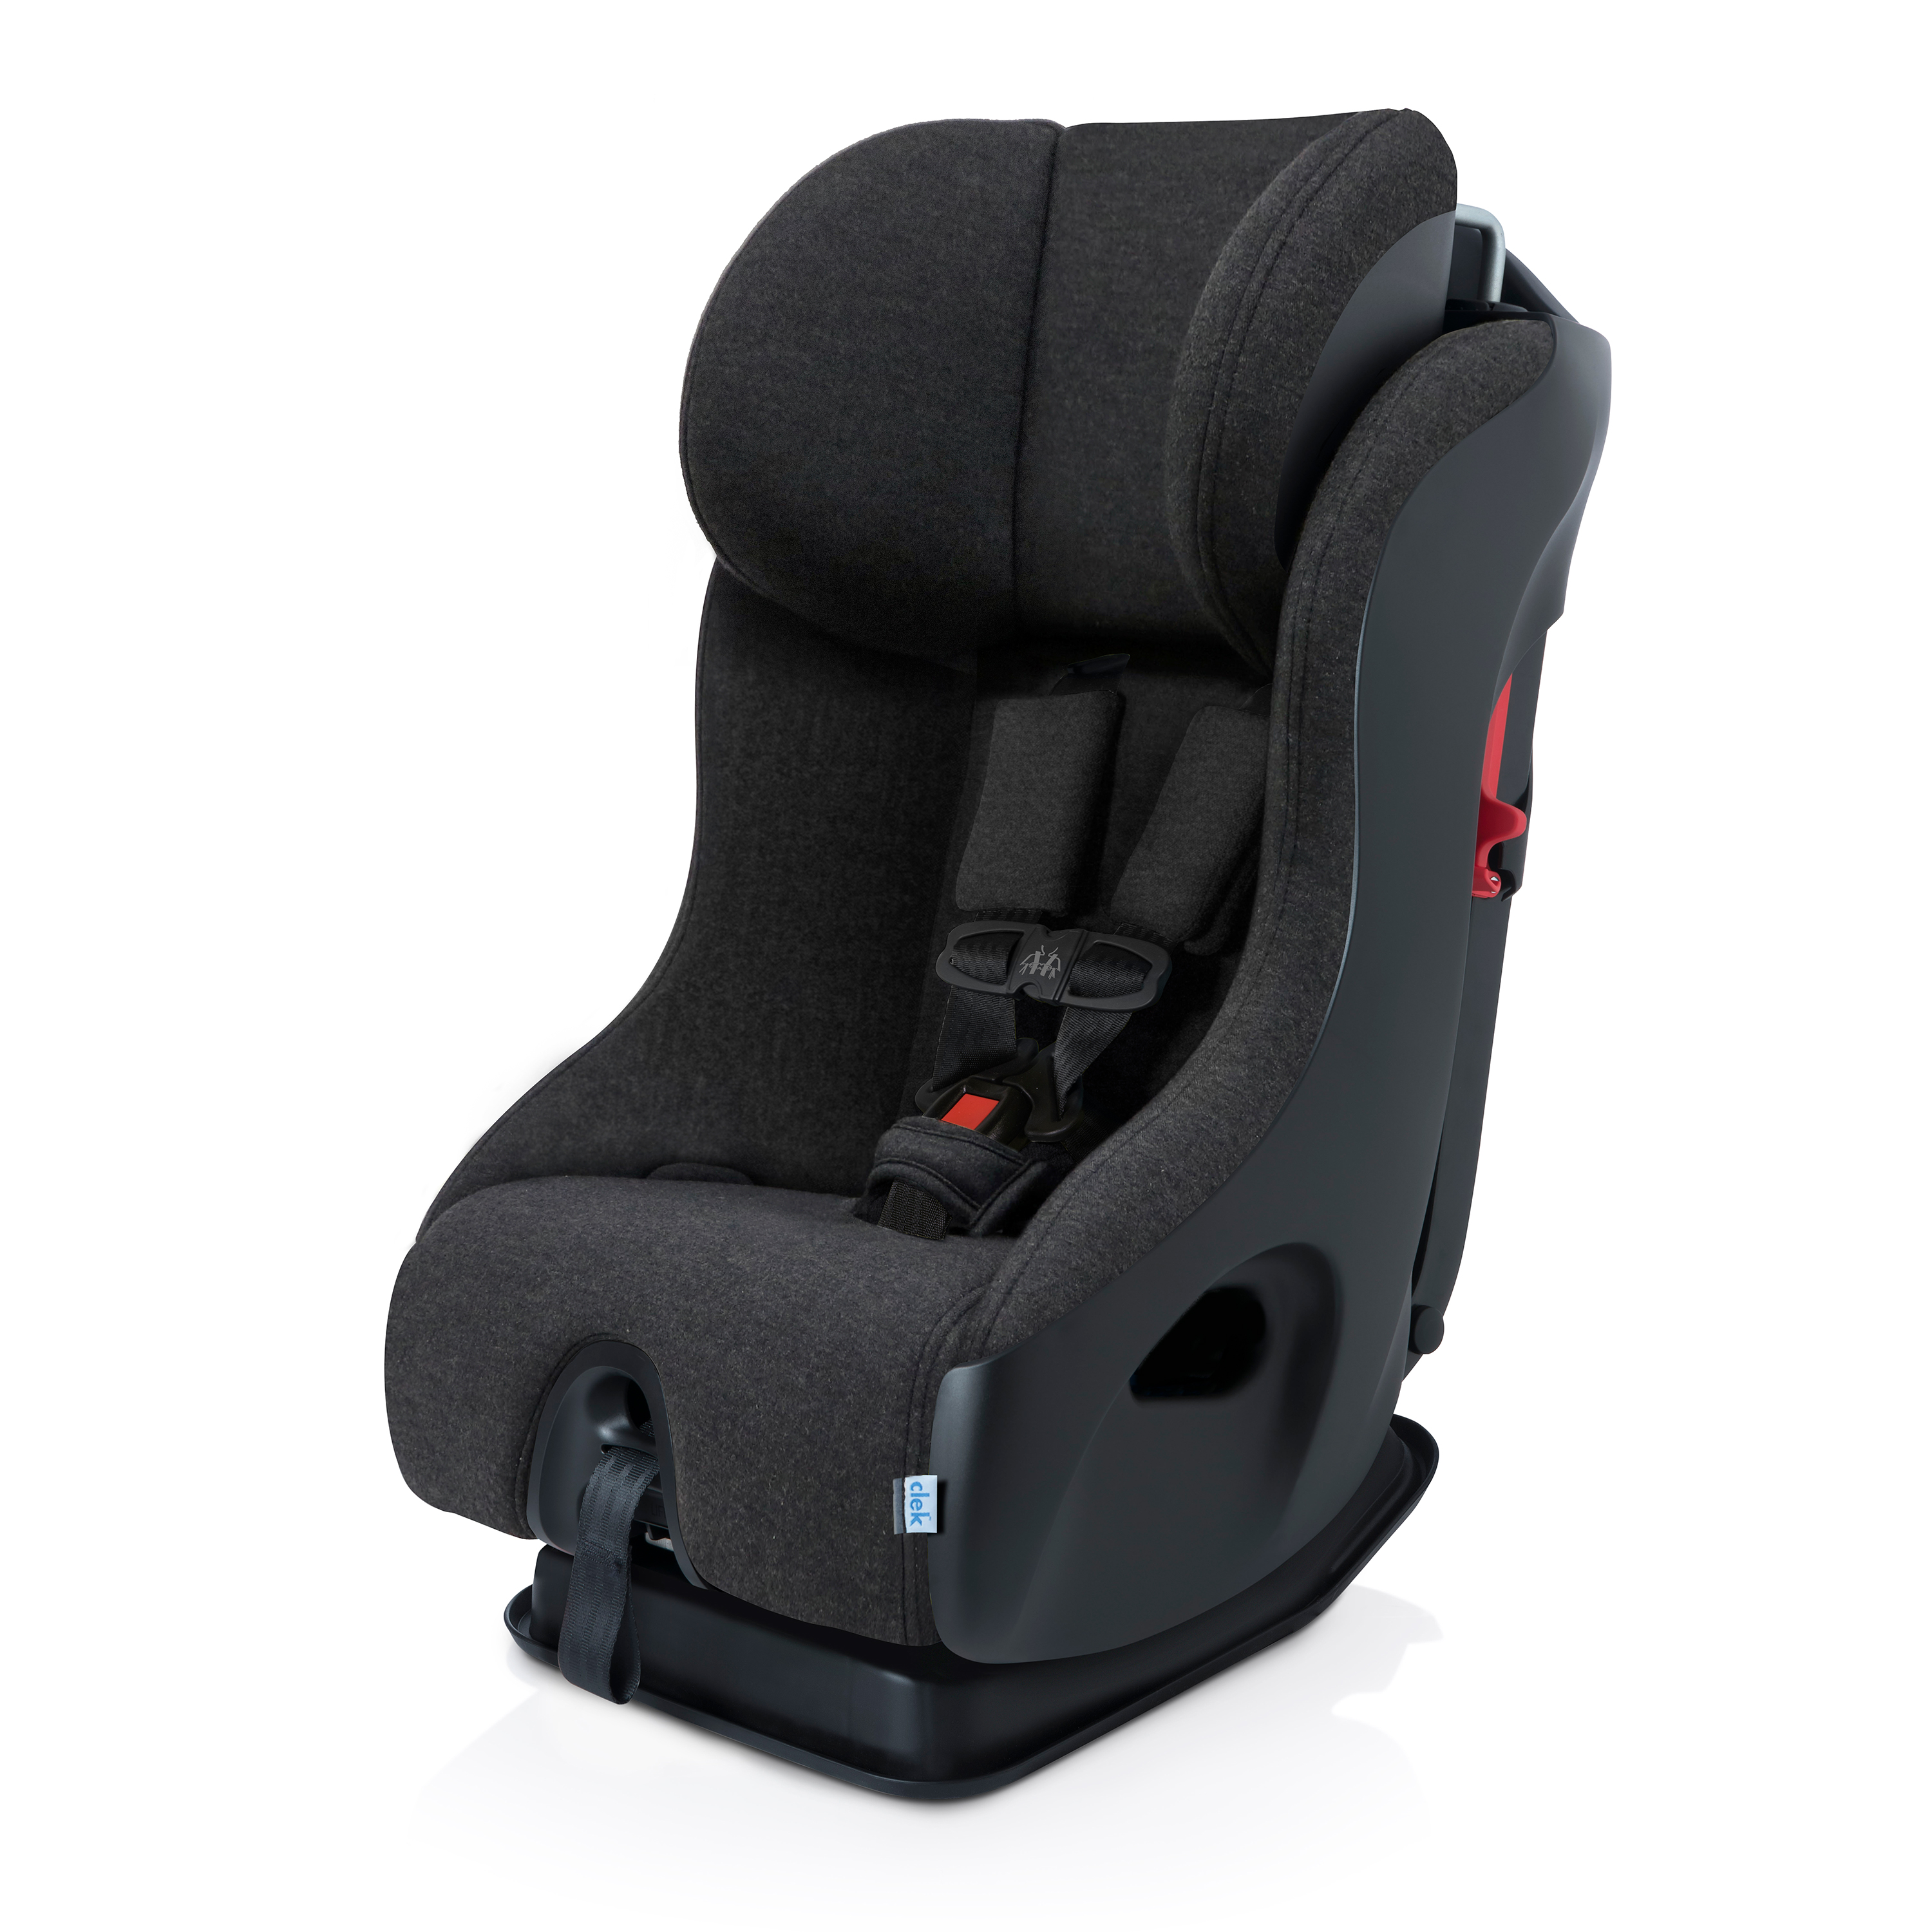 2020 Clek Fllo Convertible Car Seat - Mammoth (Merino Wool)